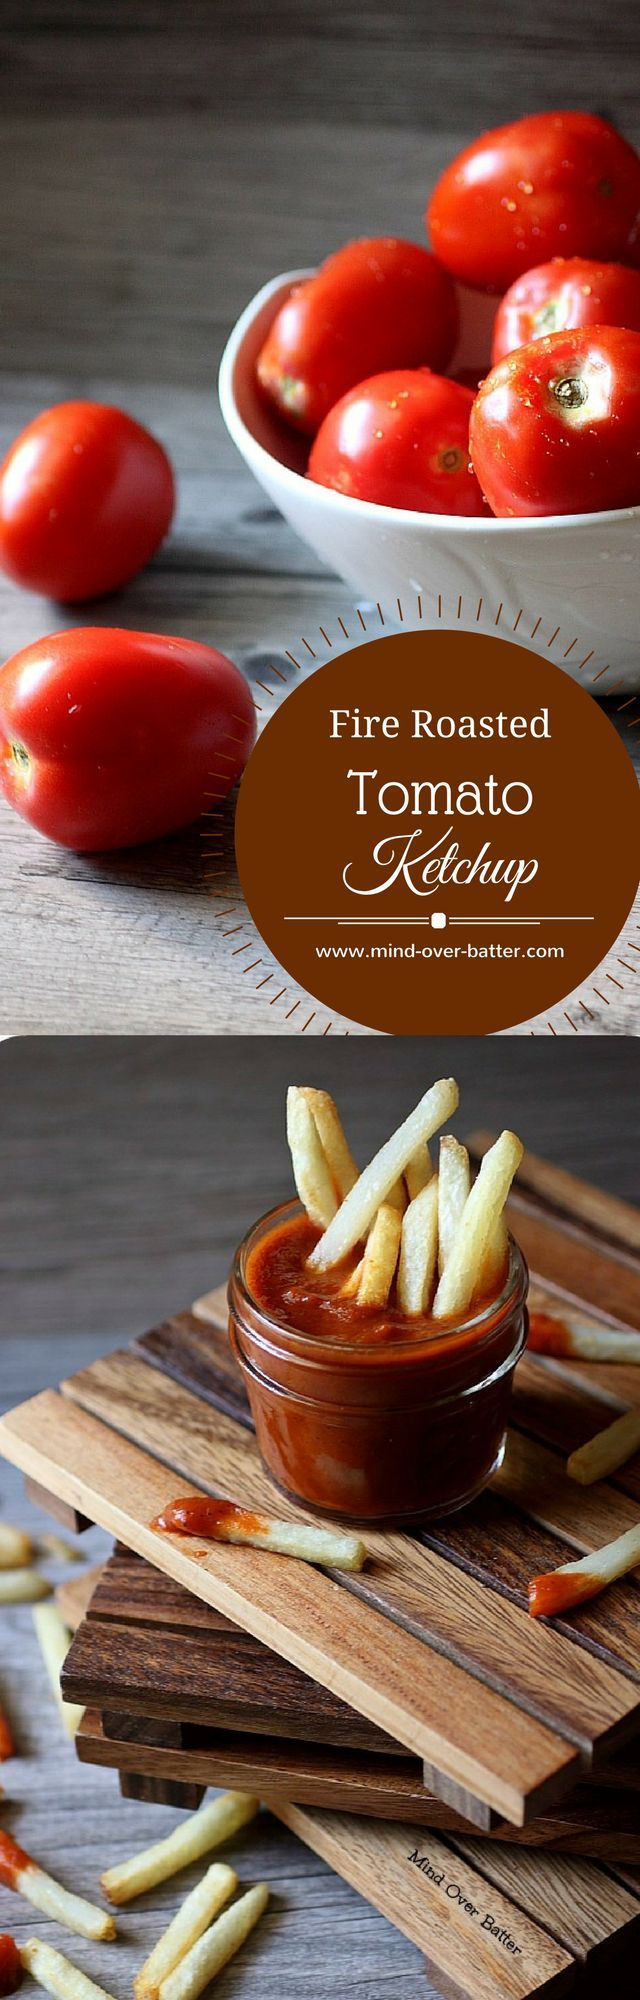 Fire Roasted Tomato Ketchup -- http://www.mind-over-batter.com